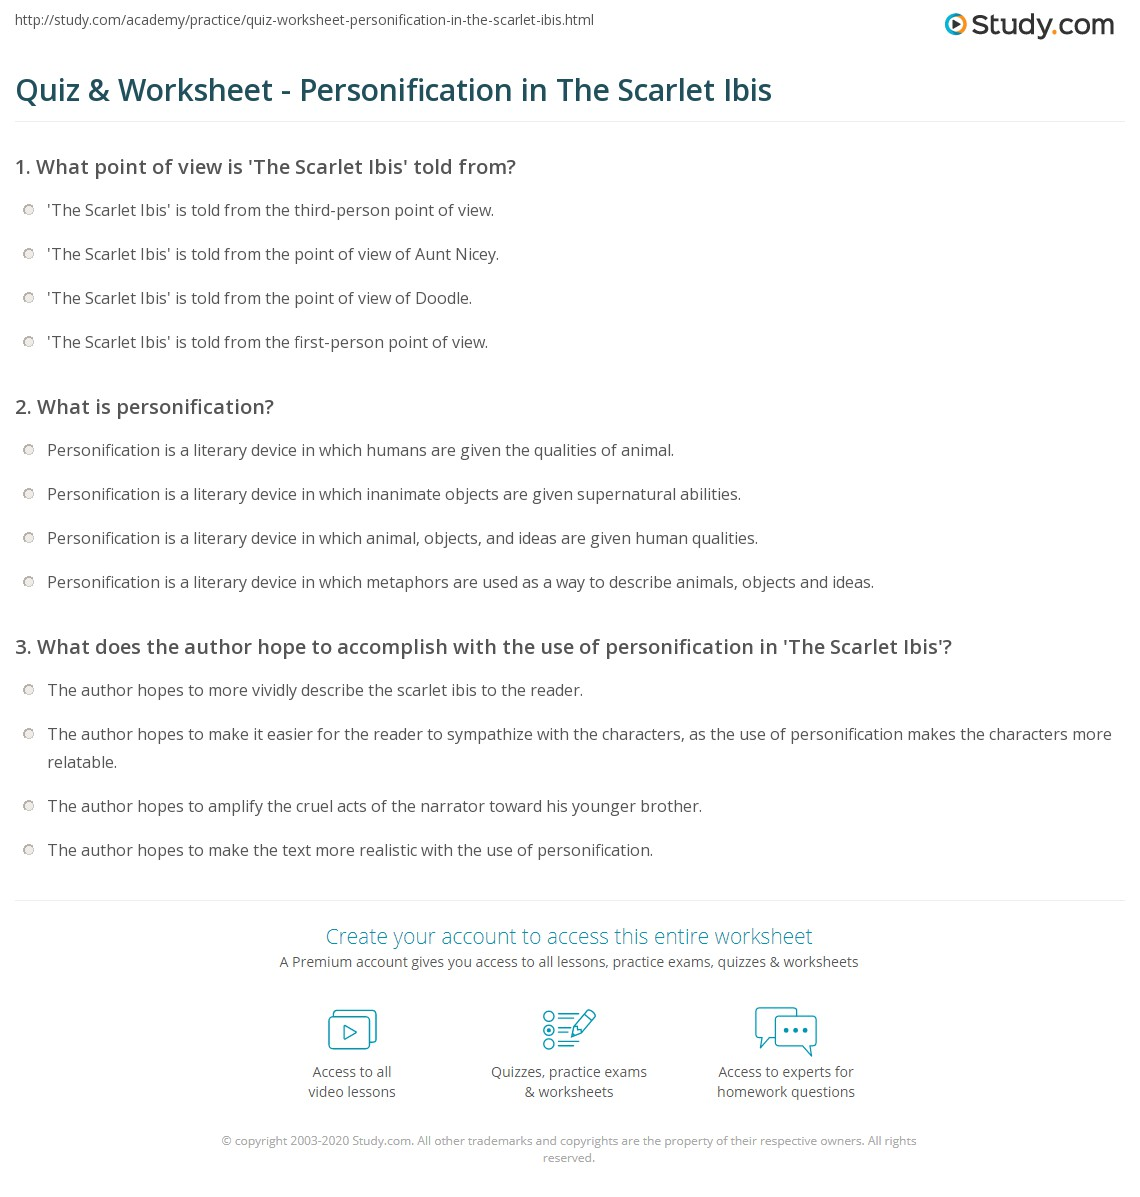 the scarlet ibis essay quiz amp worksheet personification in the scarlet ibis study com quiz amp worksheet personification in the scarlet ibis study com